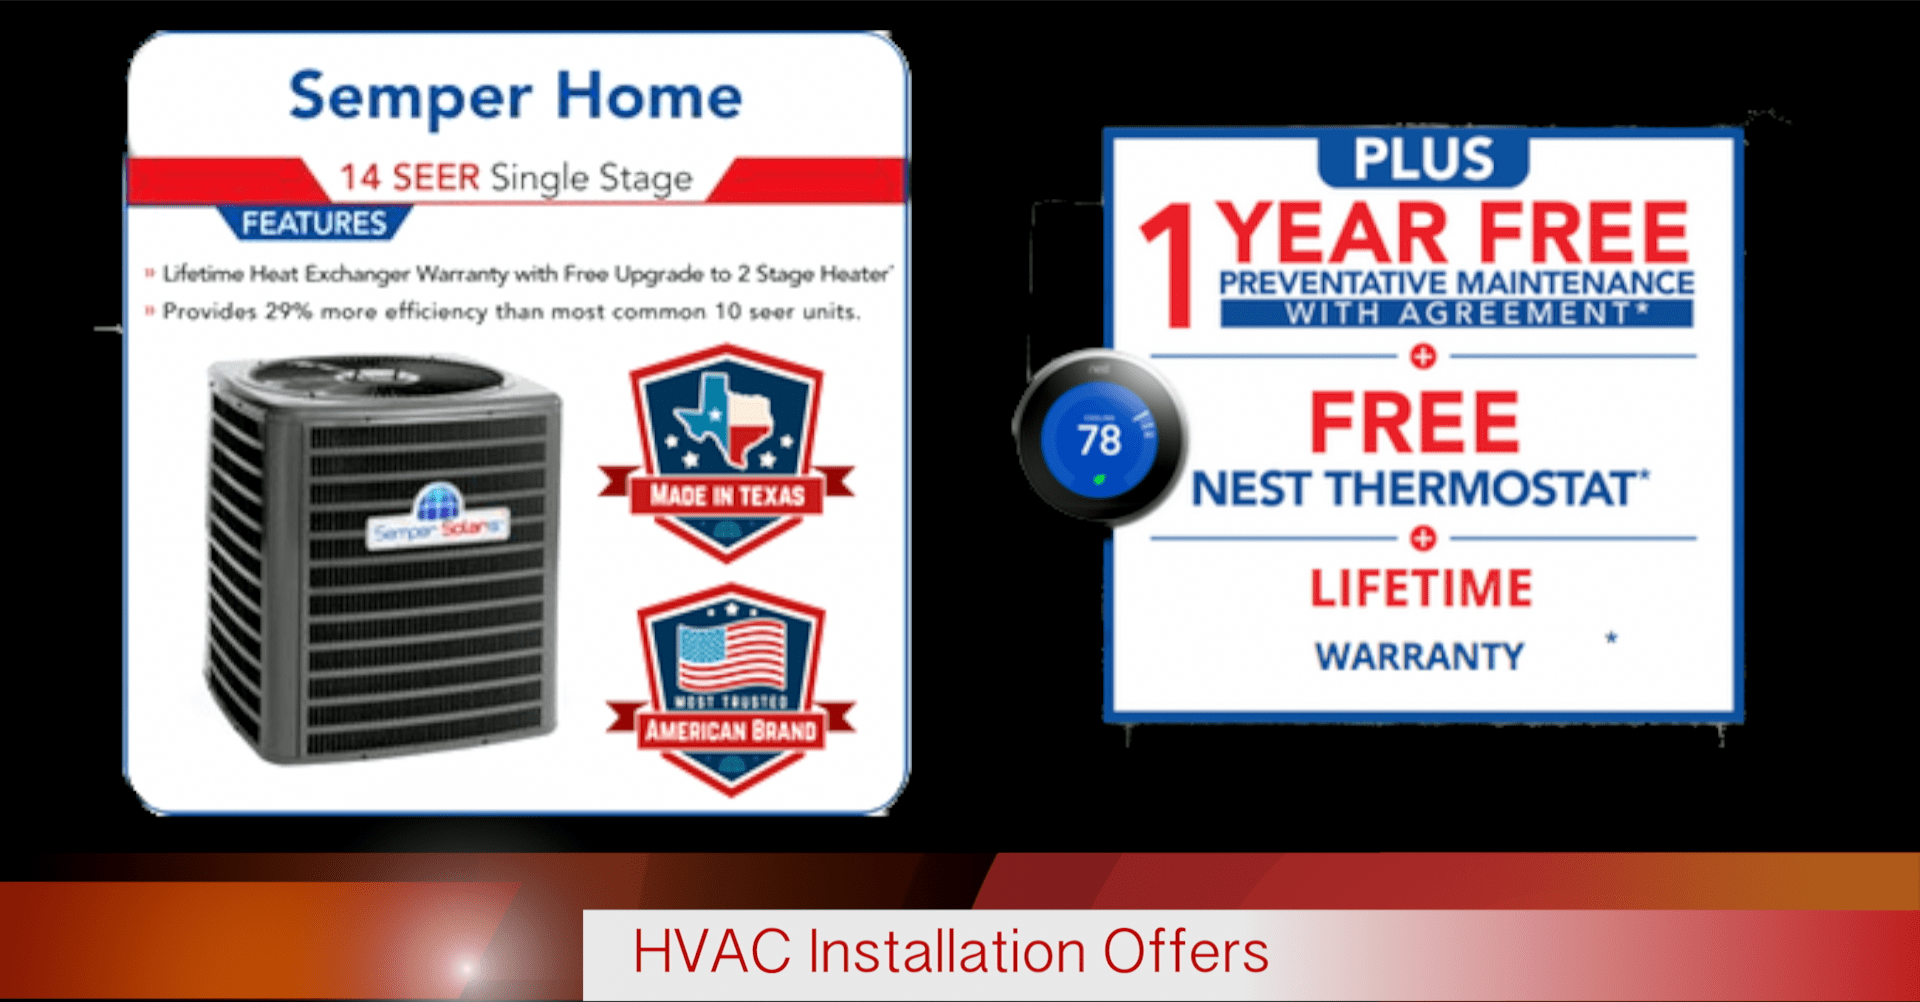 Chula Vista HVAC Companies | Best Heating Repair